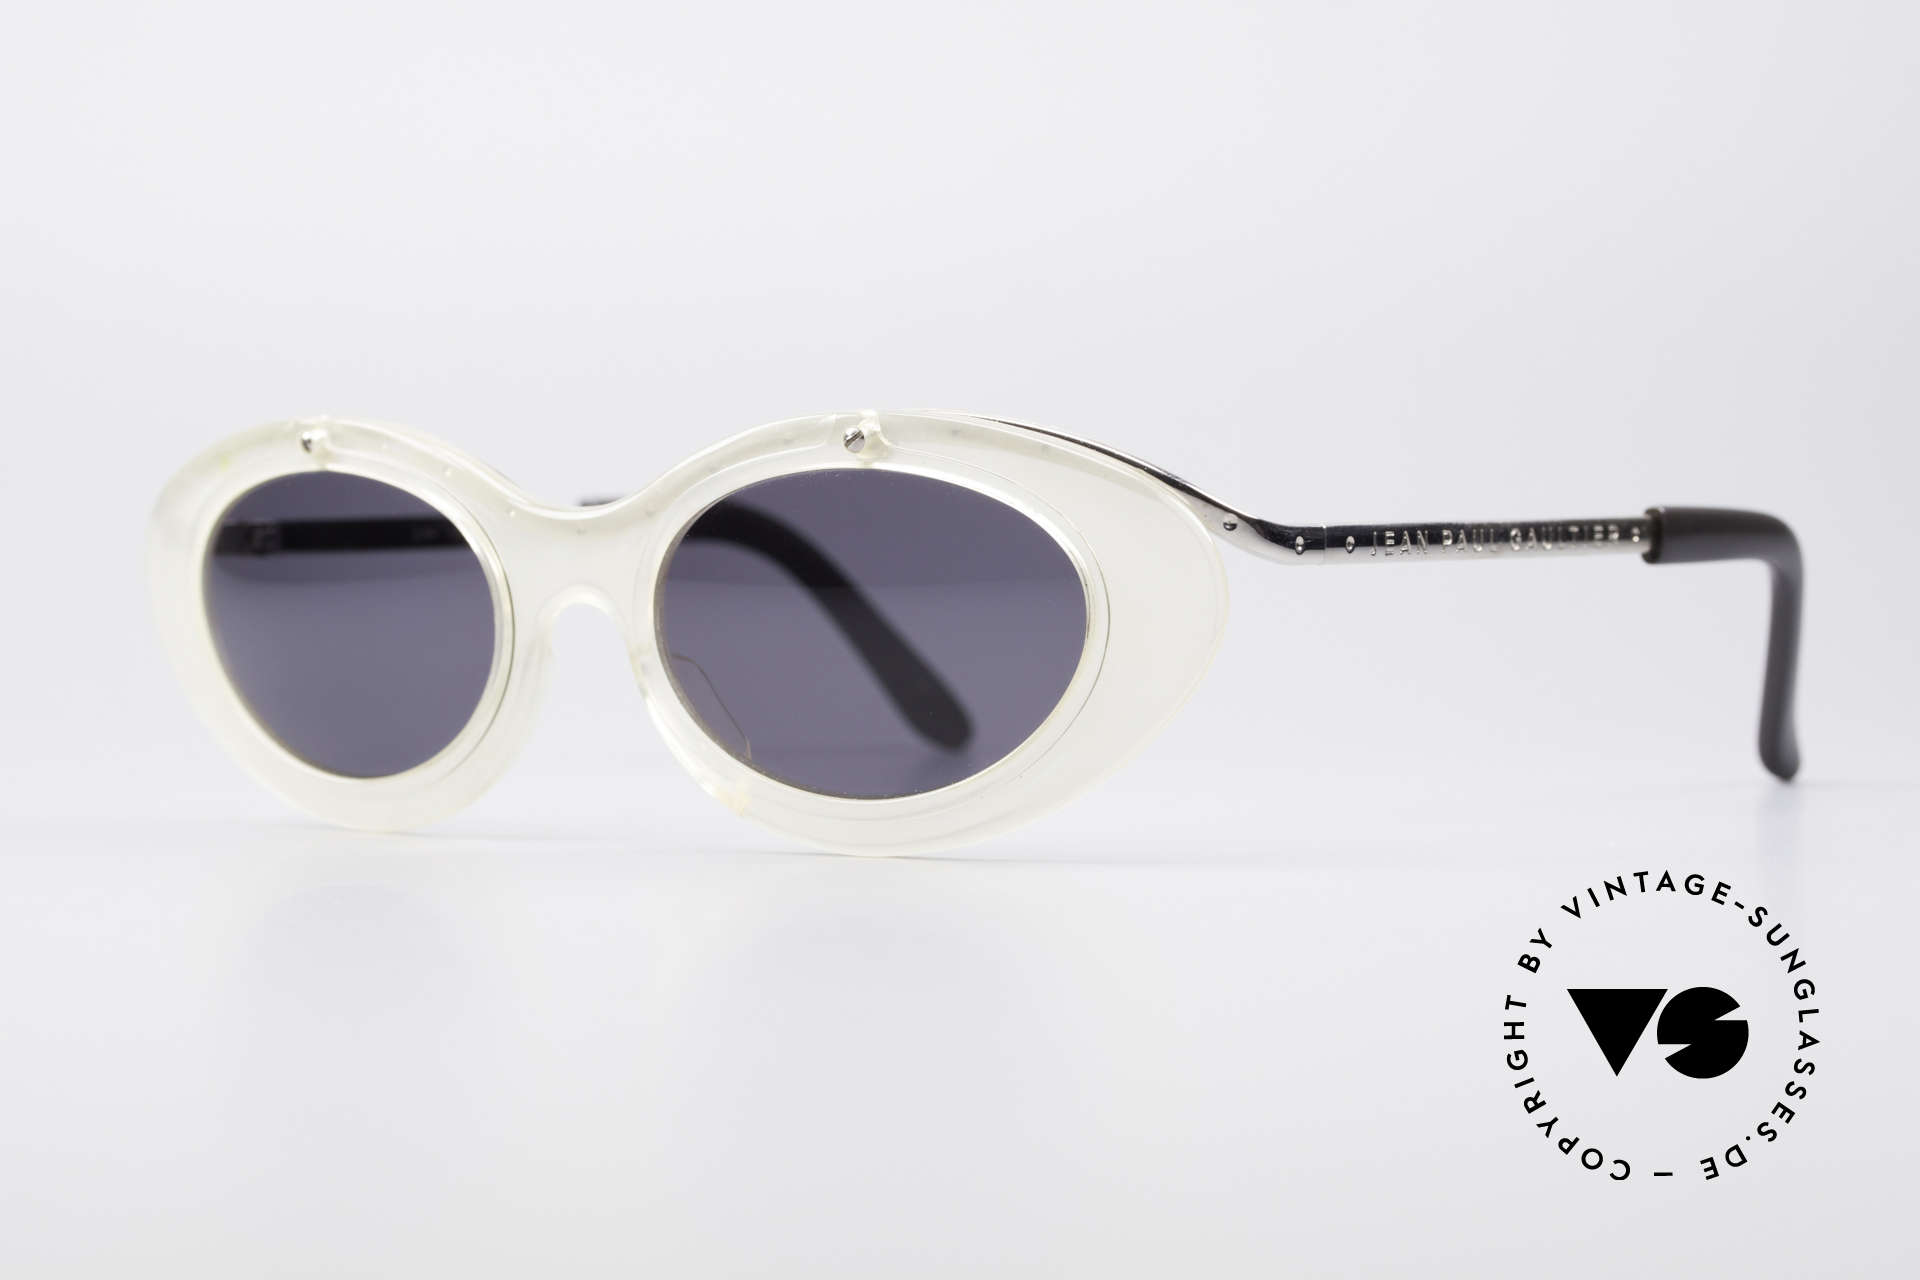 Jean Paul Gaultier 56-7201 Designer Ladies Sunglasses, front appears like frosted glass / translucent glass, Made for Women